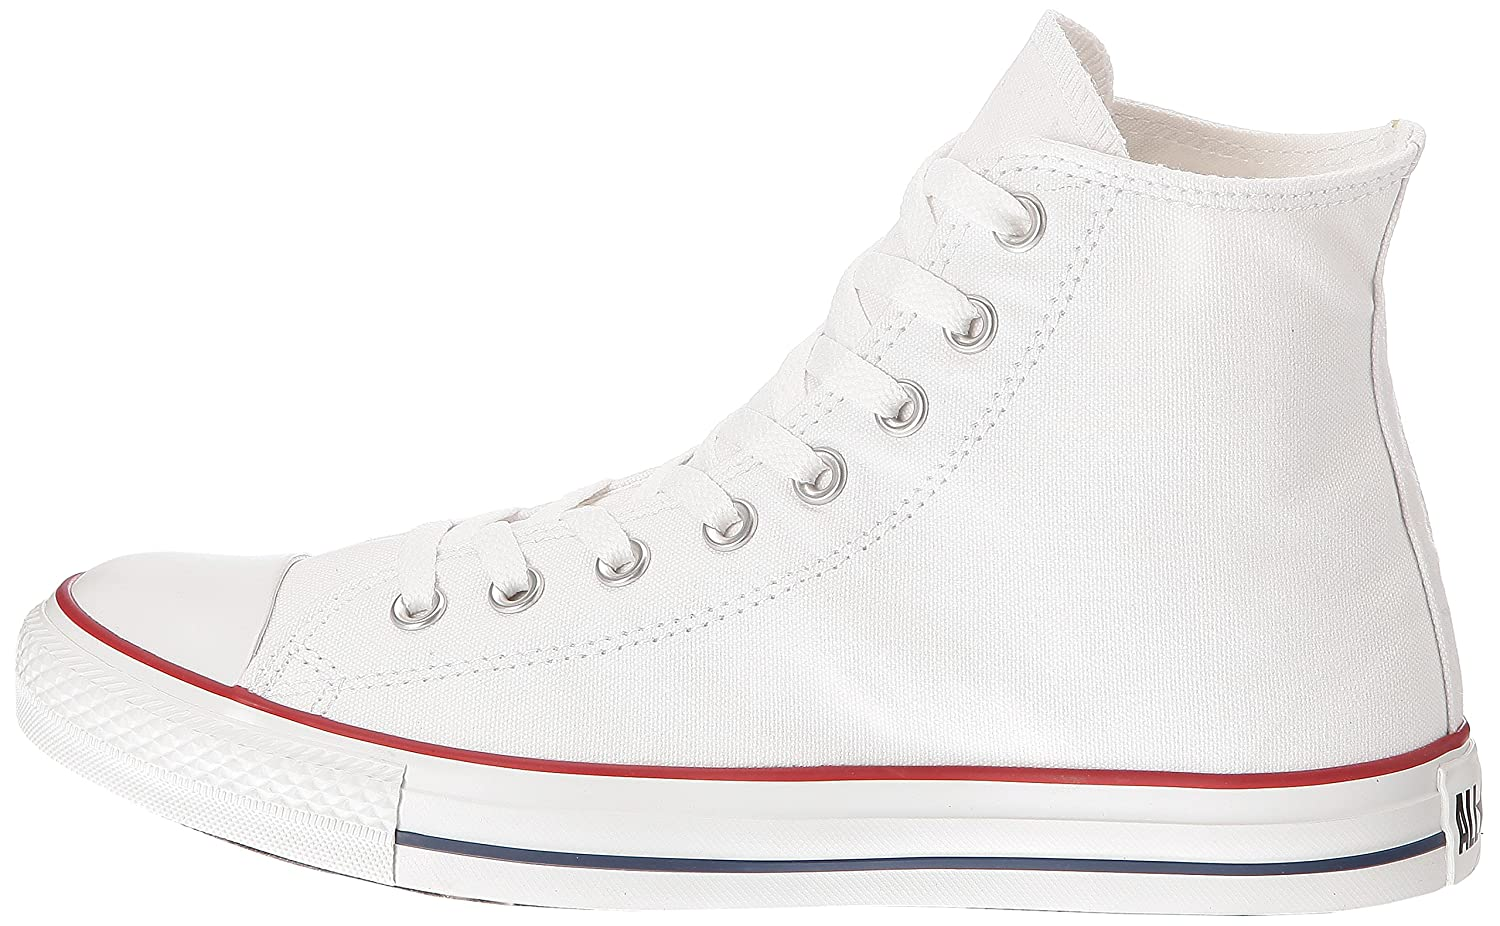 Converse Chuck Taylor All Star Core Hi B01M3RZPU2 7 Men 9 Women|Optical White